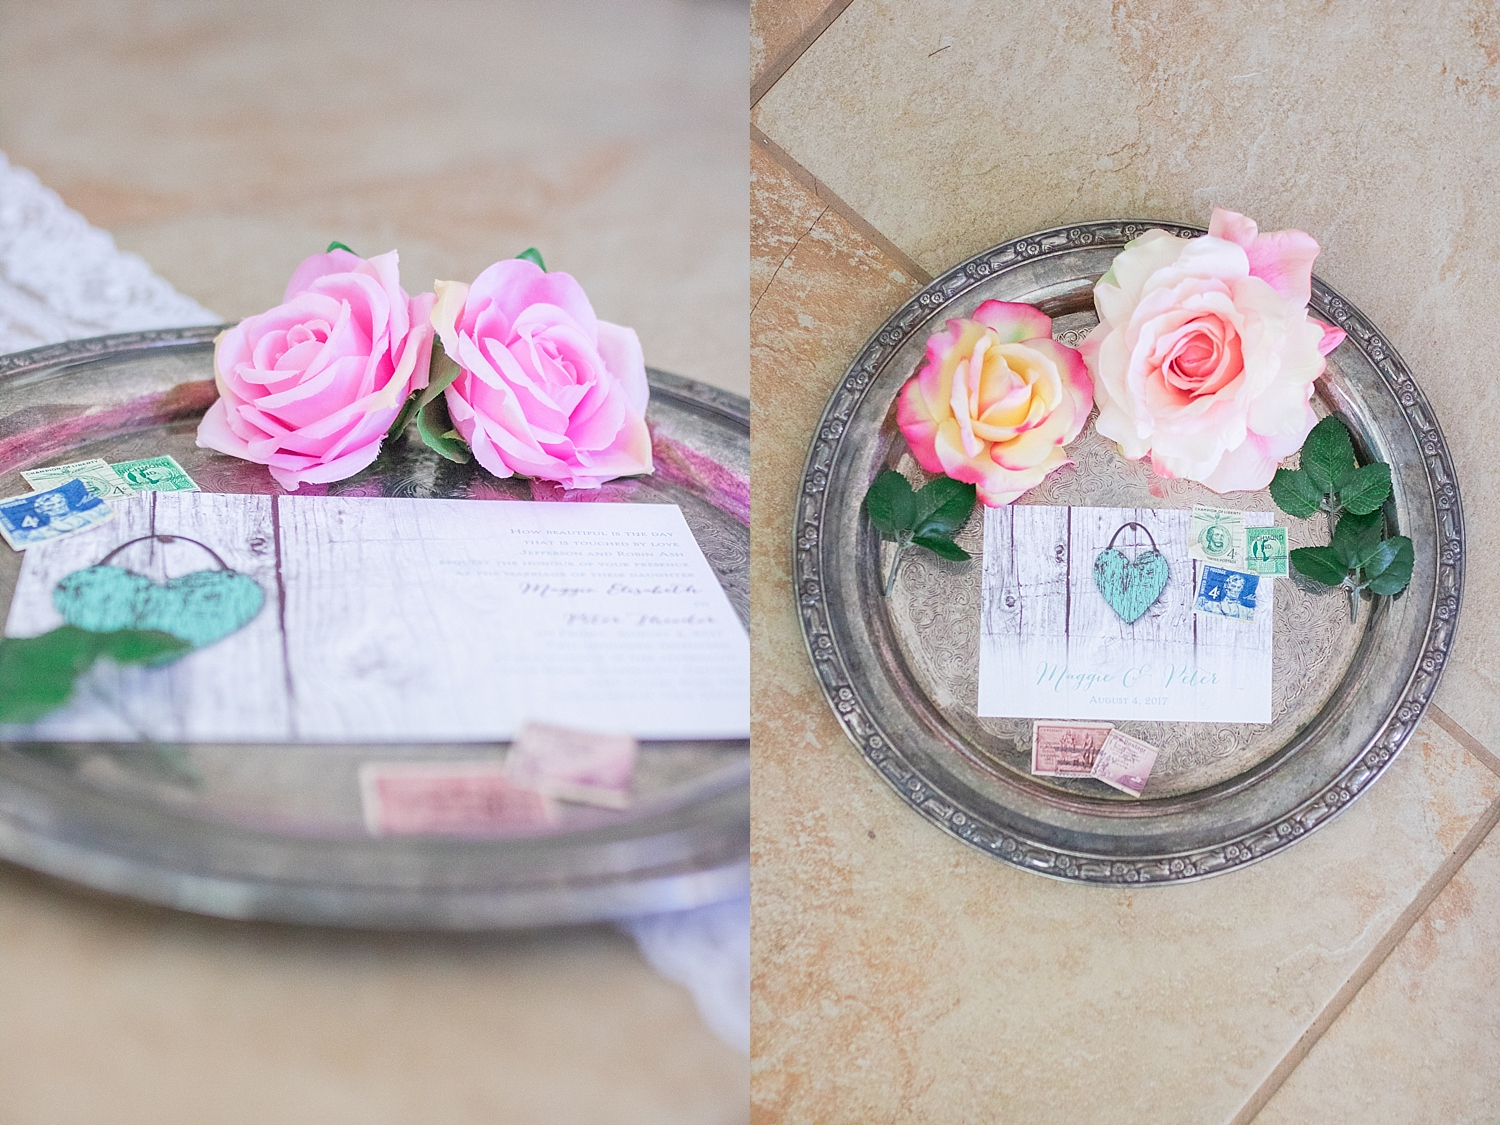 Rustic teal invitations with vintage stamps pink and yellow roses and leaves.